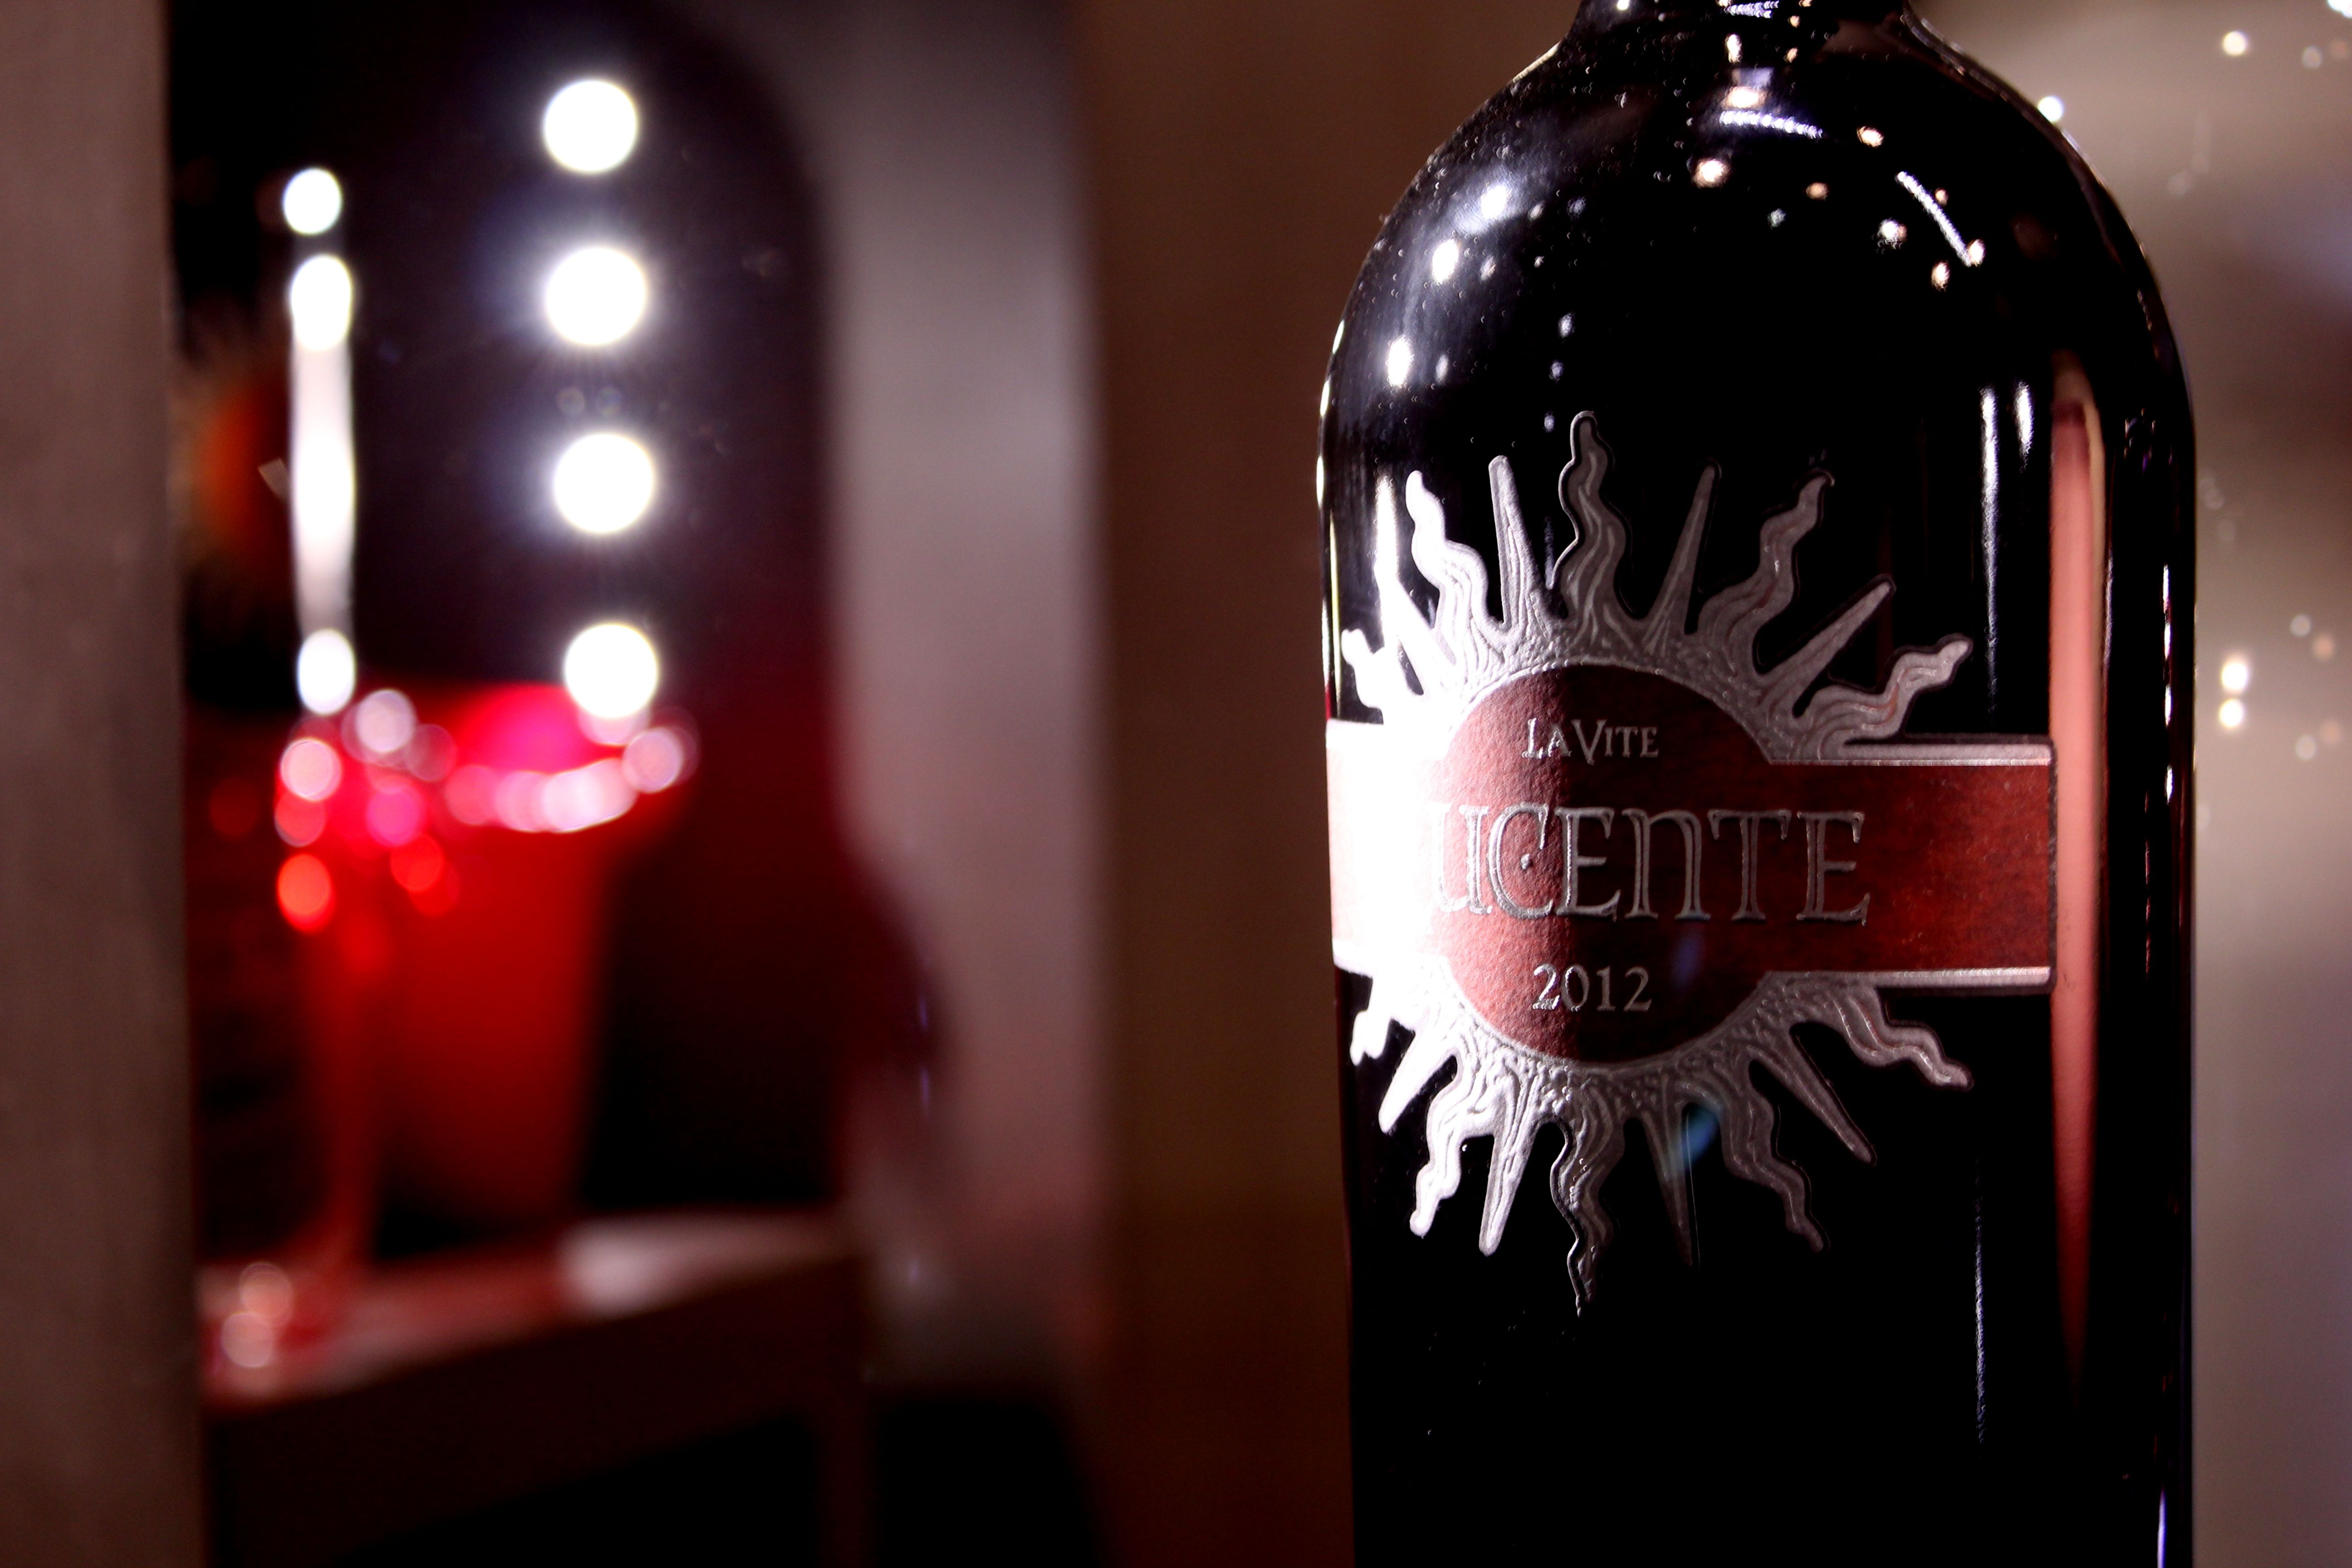 Luce tasting at the Store Venini, on 9th October, 2014. #Luce4Expo